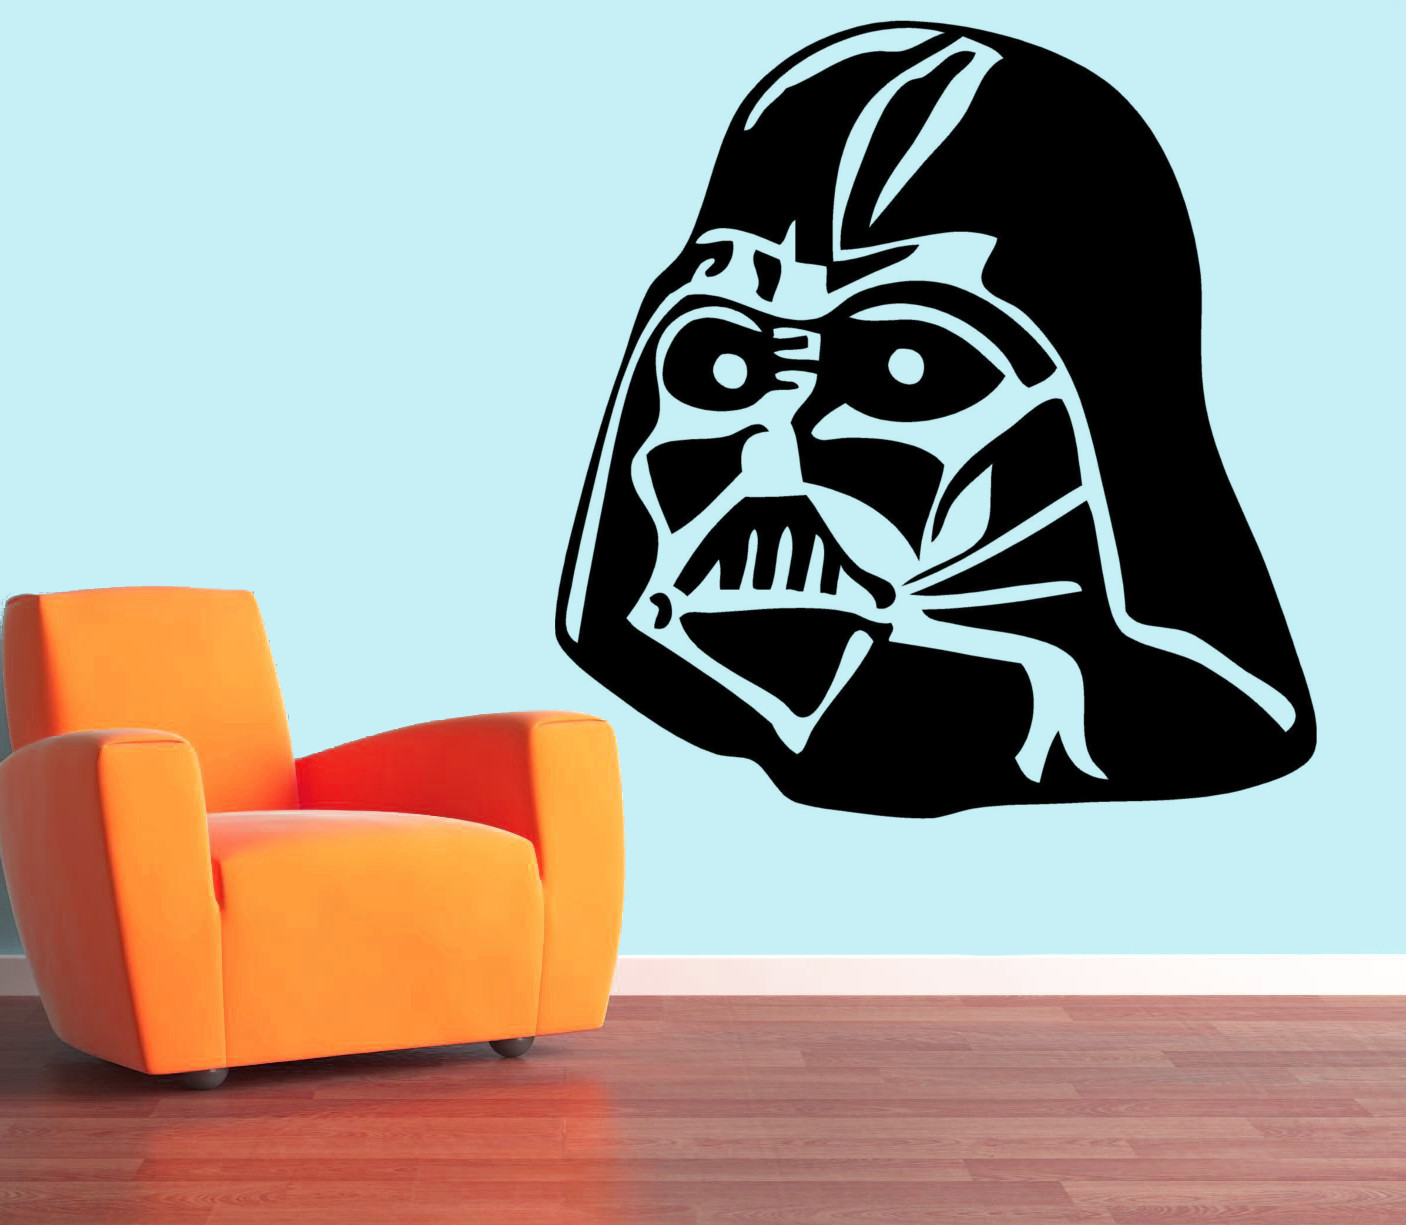 streetwall wandtattoo darth vader wandbild aufkleber. Black Bedroom Furniture Sets. Home Design Ideas